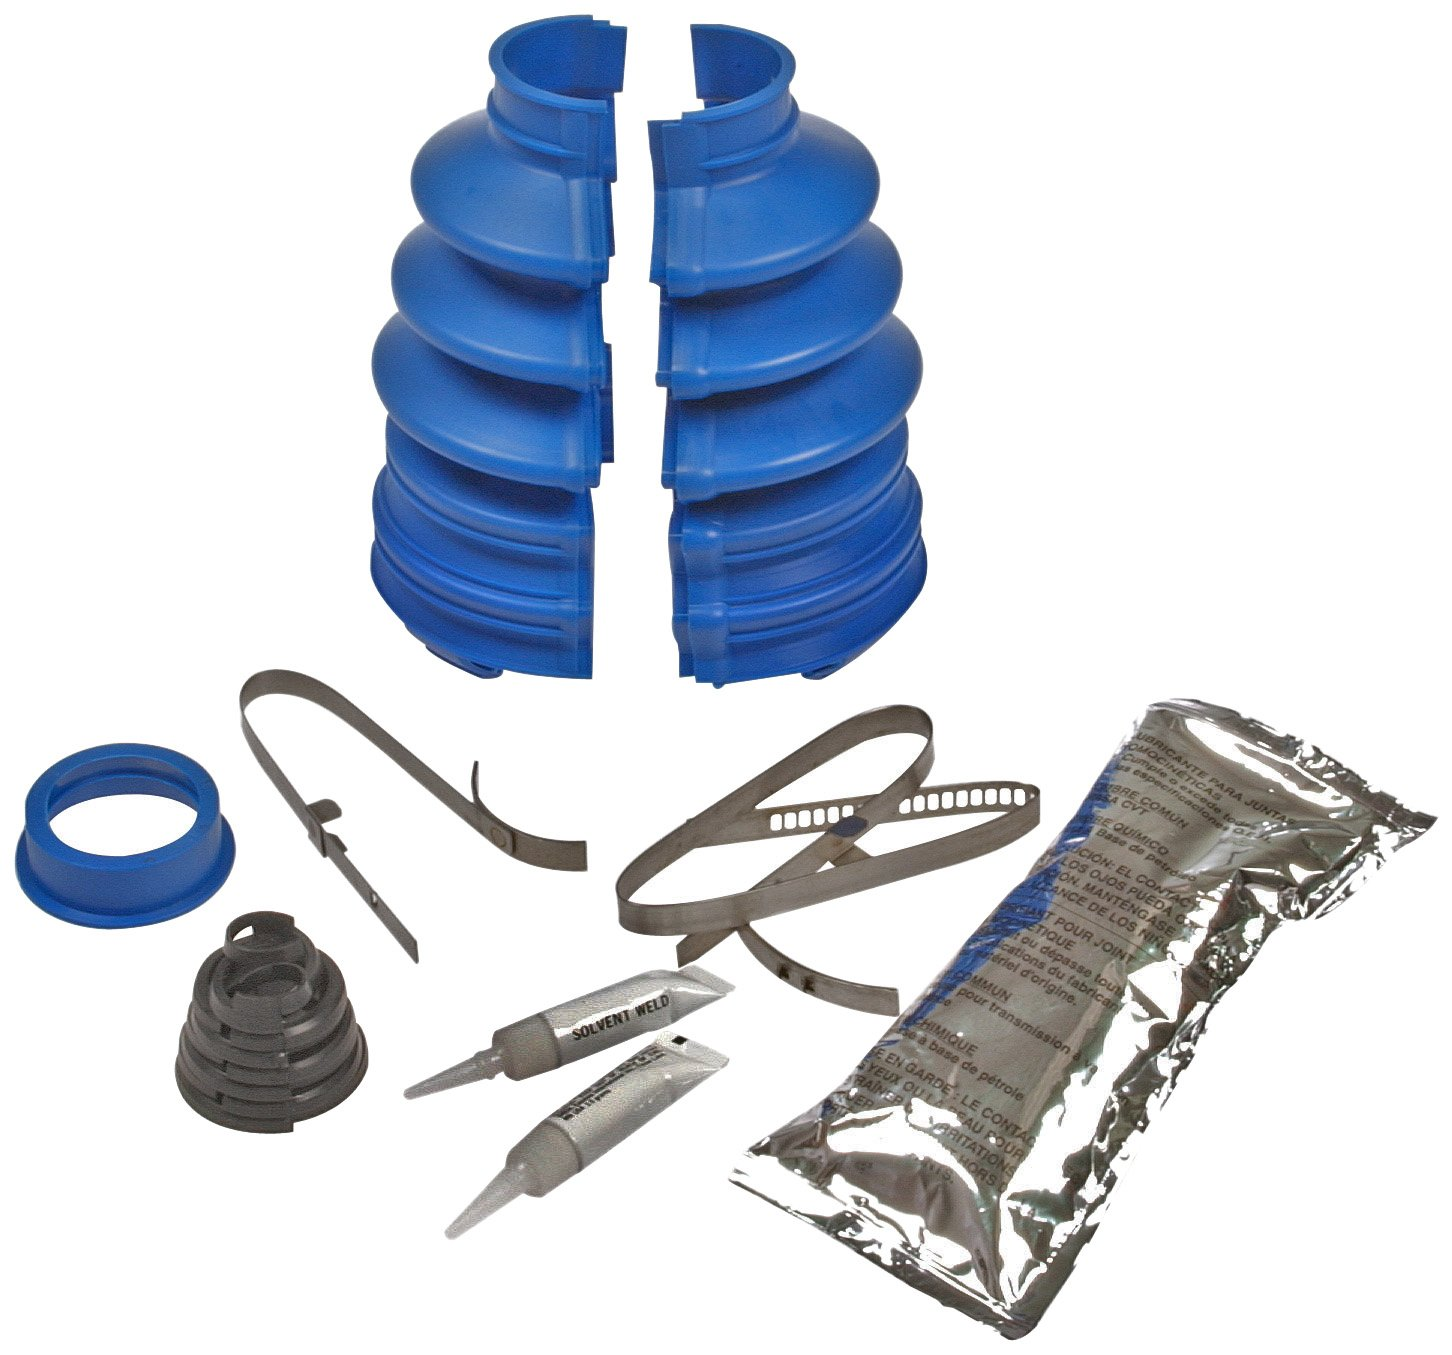 Dorman Help 614 632 C Series Universal Quick Boot Kit Universals Rear Axle Available Part Diagrams 10 In Front Suspension Automotive